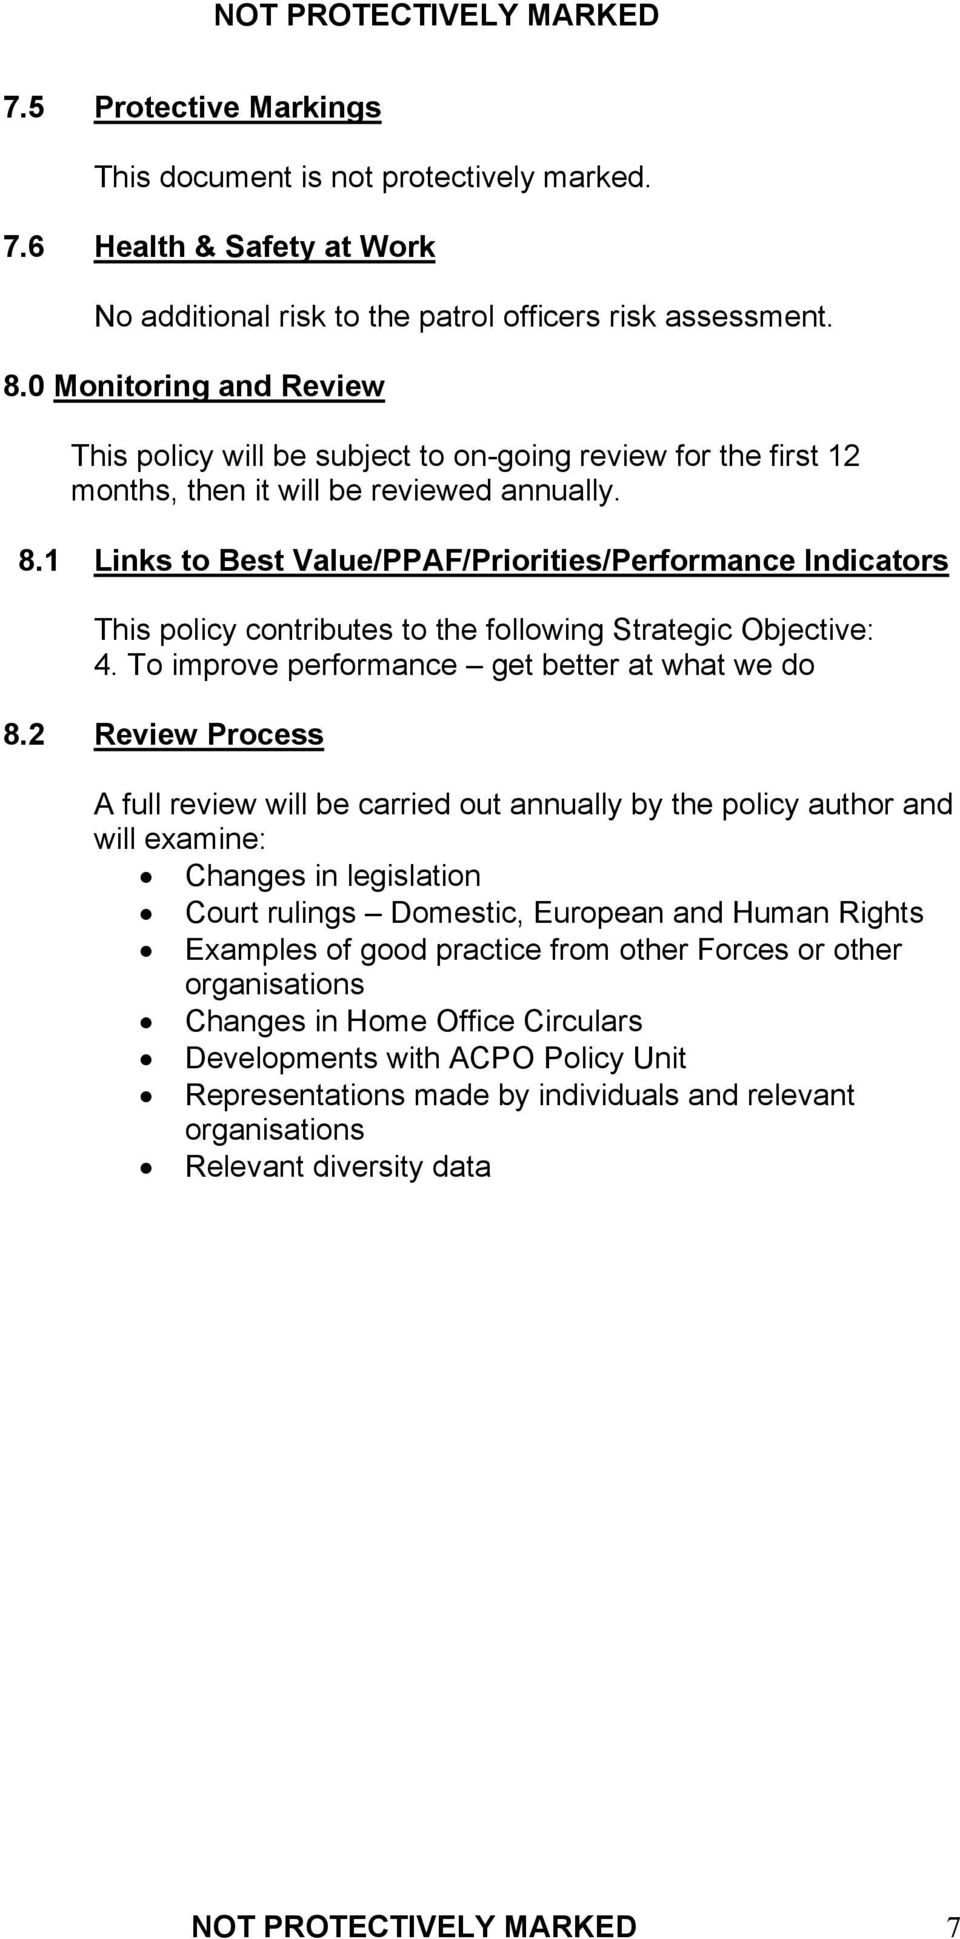 1 Links to Best Value/PPAF/Priorities/Performance Indicators This policy contributes to the following Strategic Objective: 4. To improve performance get better at what we do 8.